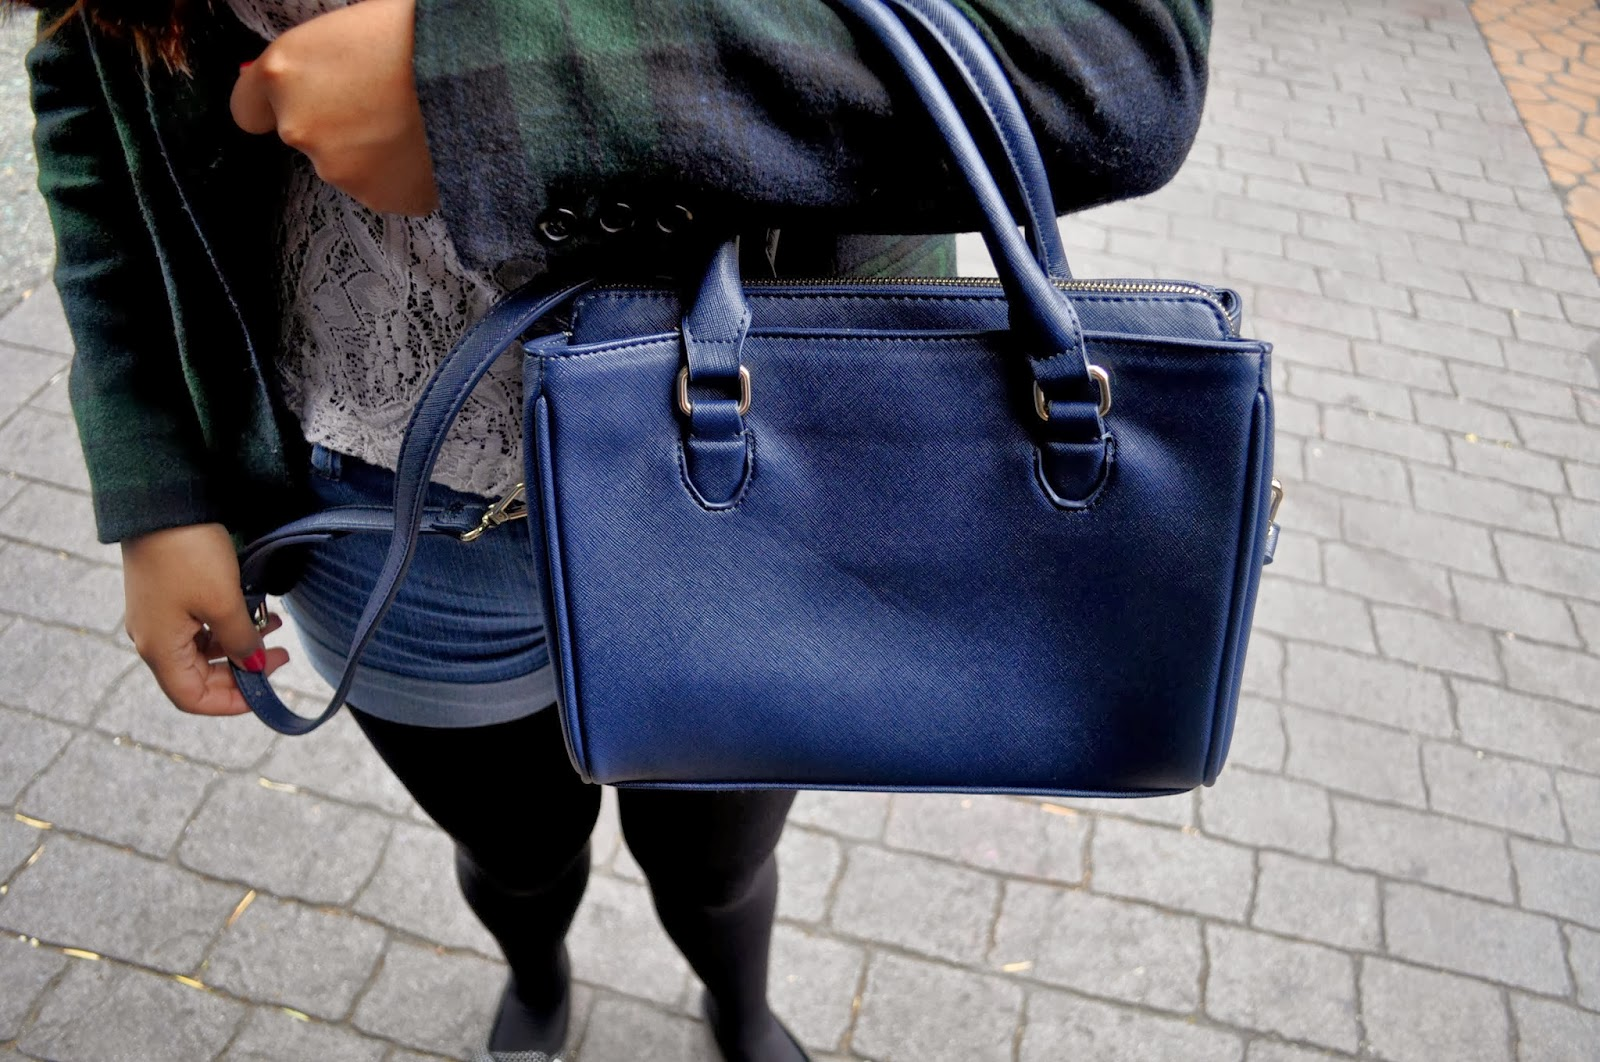 e629bace17 Two months ago I mentioned in my What I Would Buy post that I really wanted  to buy this purse. At the moment it was a dilemma, but as the days went ...